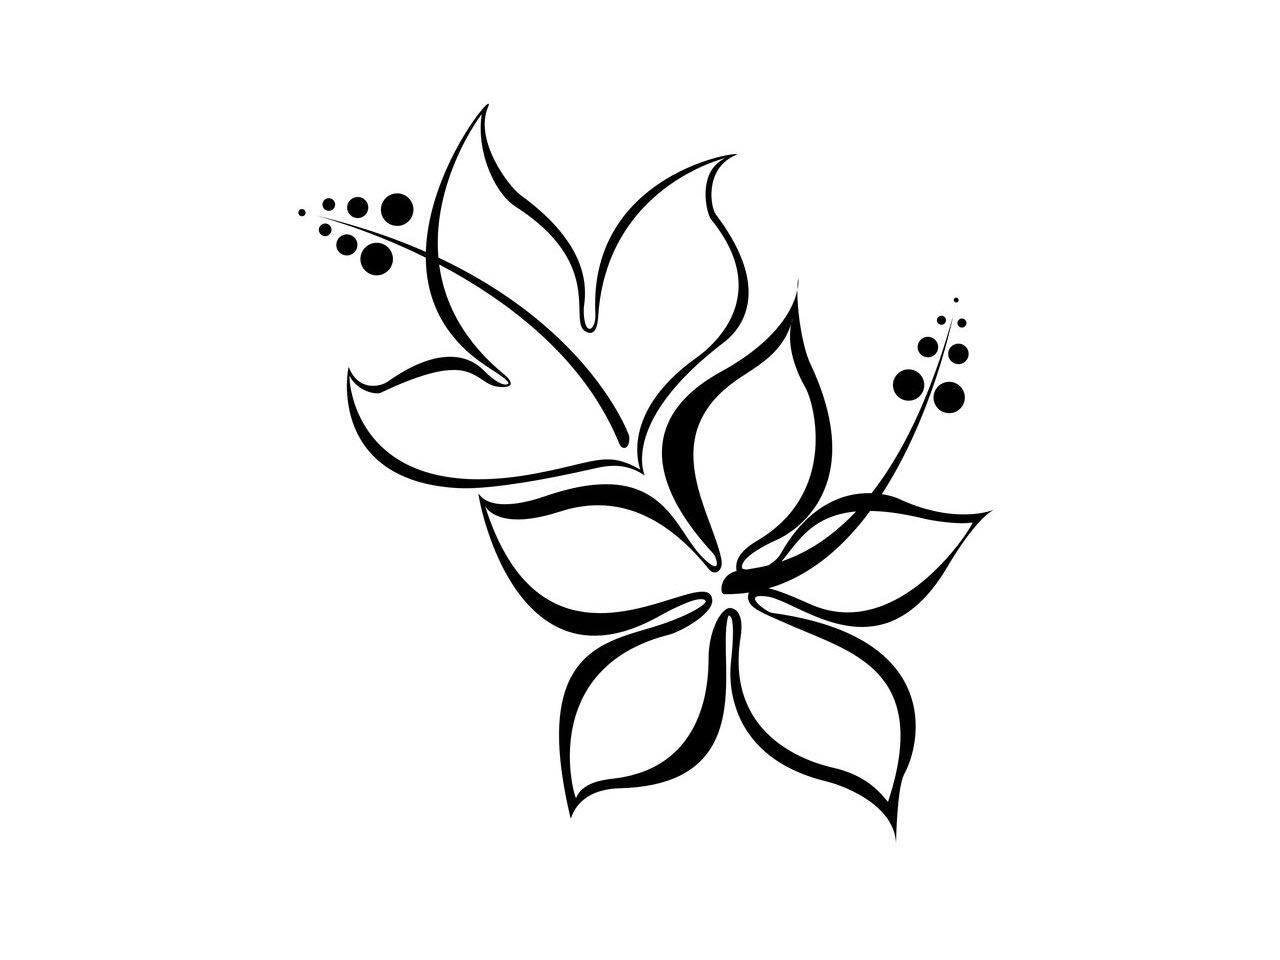 1280x960 Pictures Simple Floral Designs For Drawing,